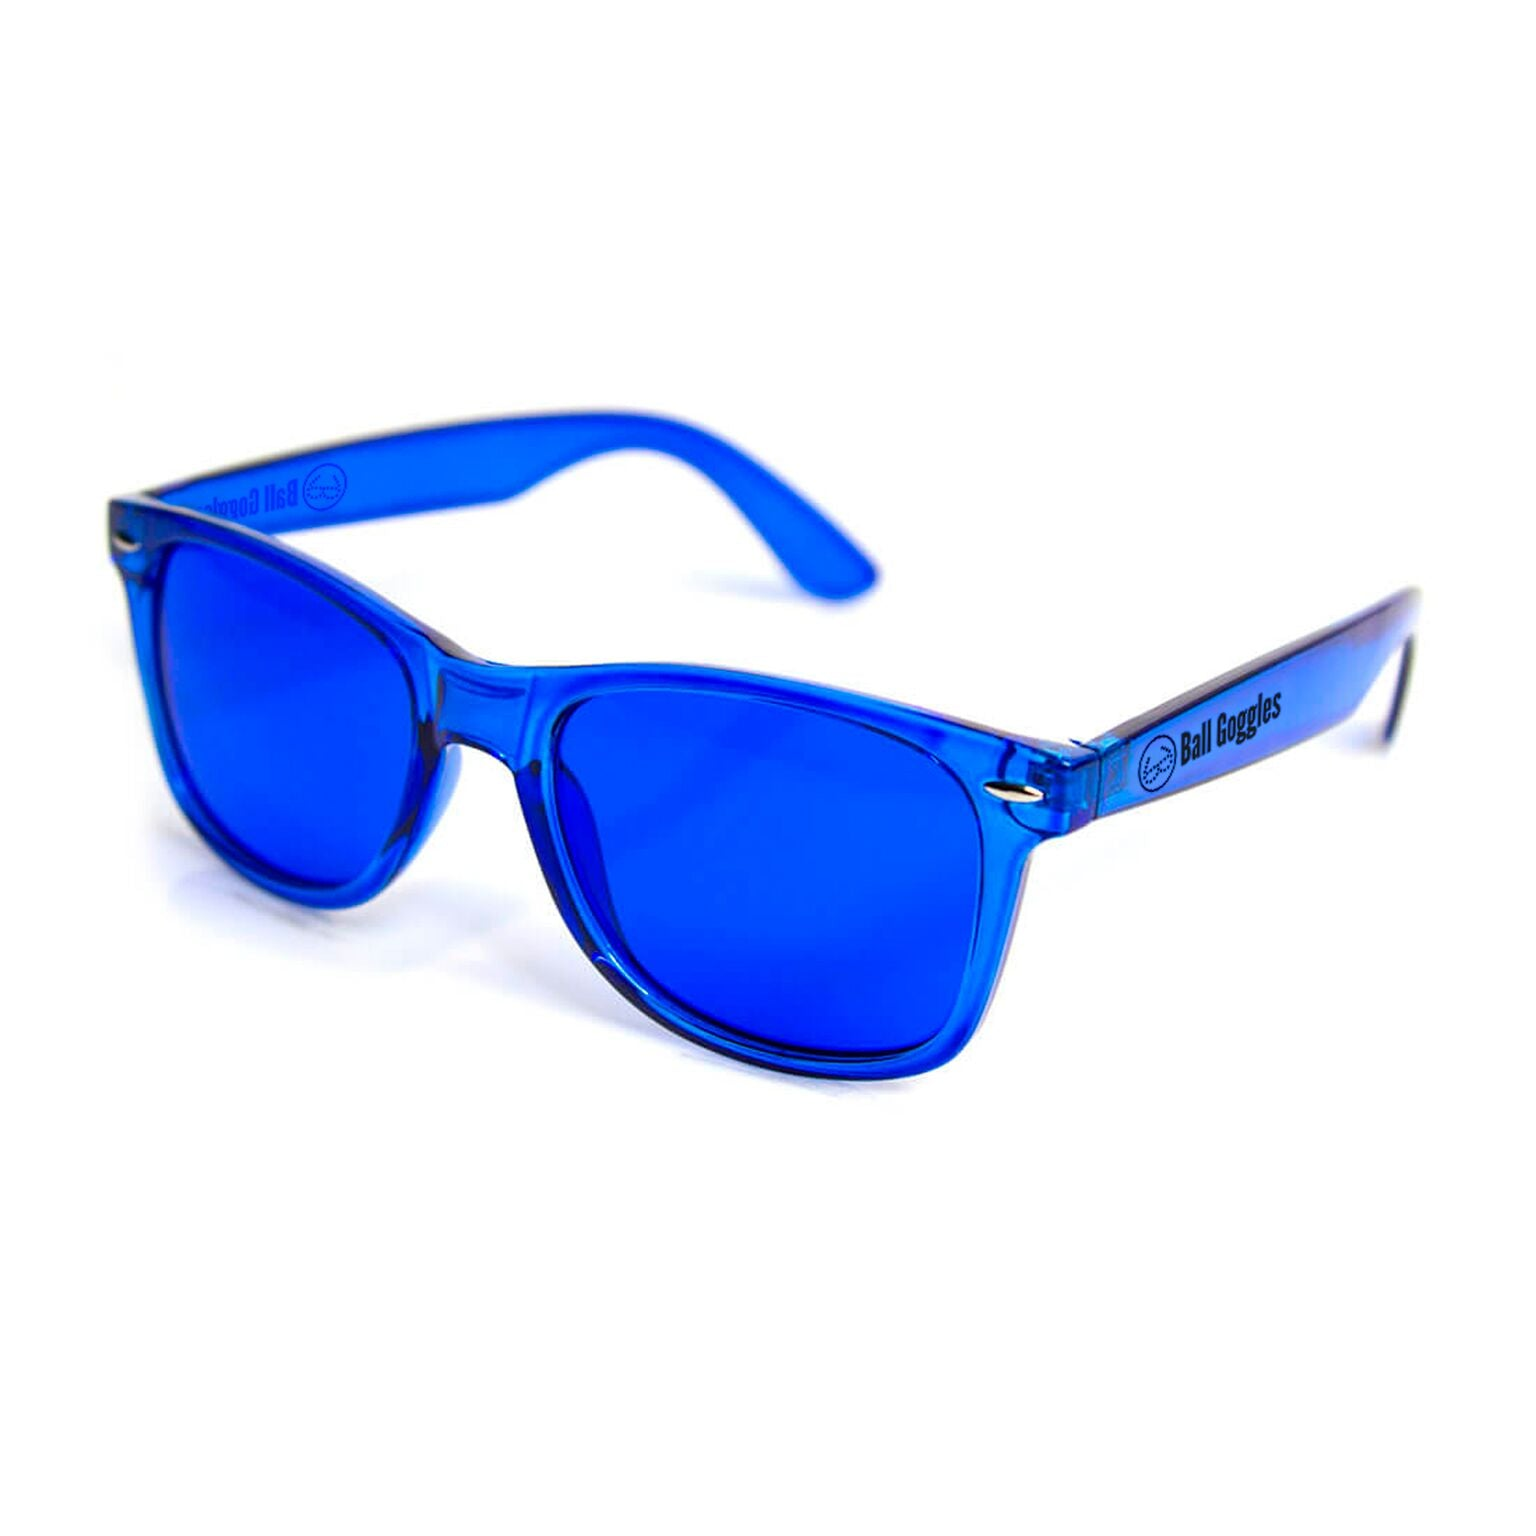 Ball Goggles™ - The Golf Ball Finding Glasses, with Green Drawstring Microfiber Case